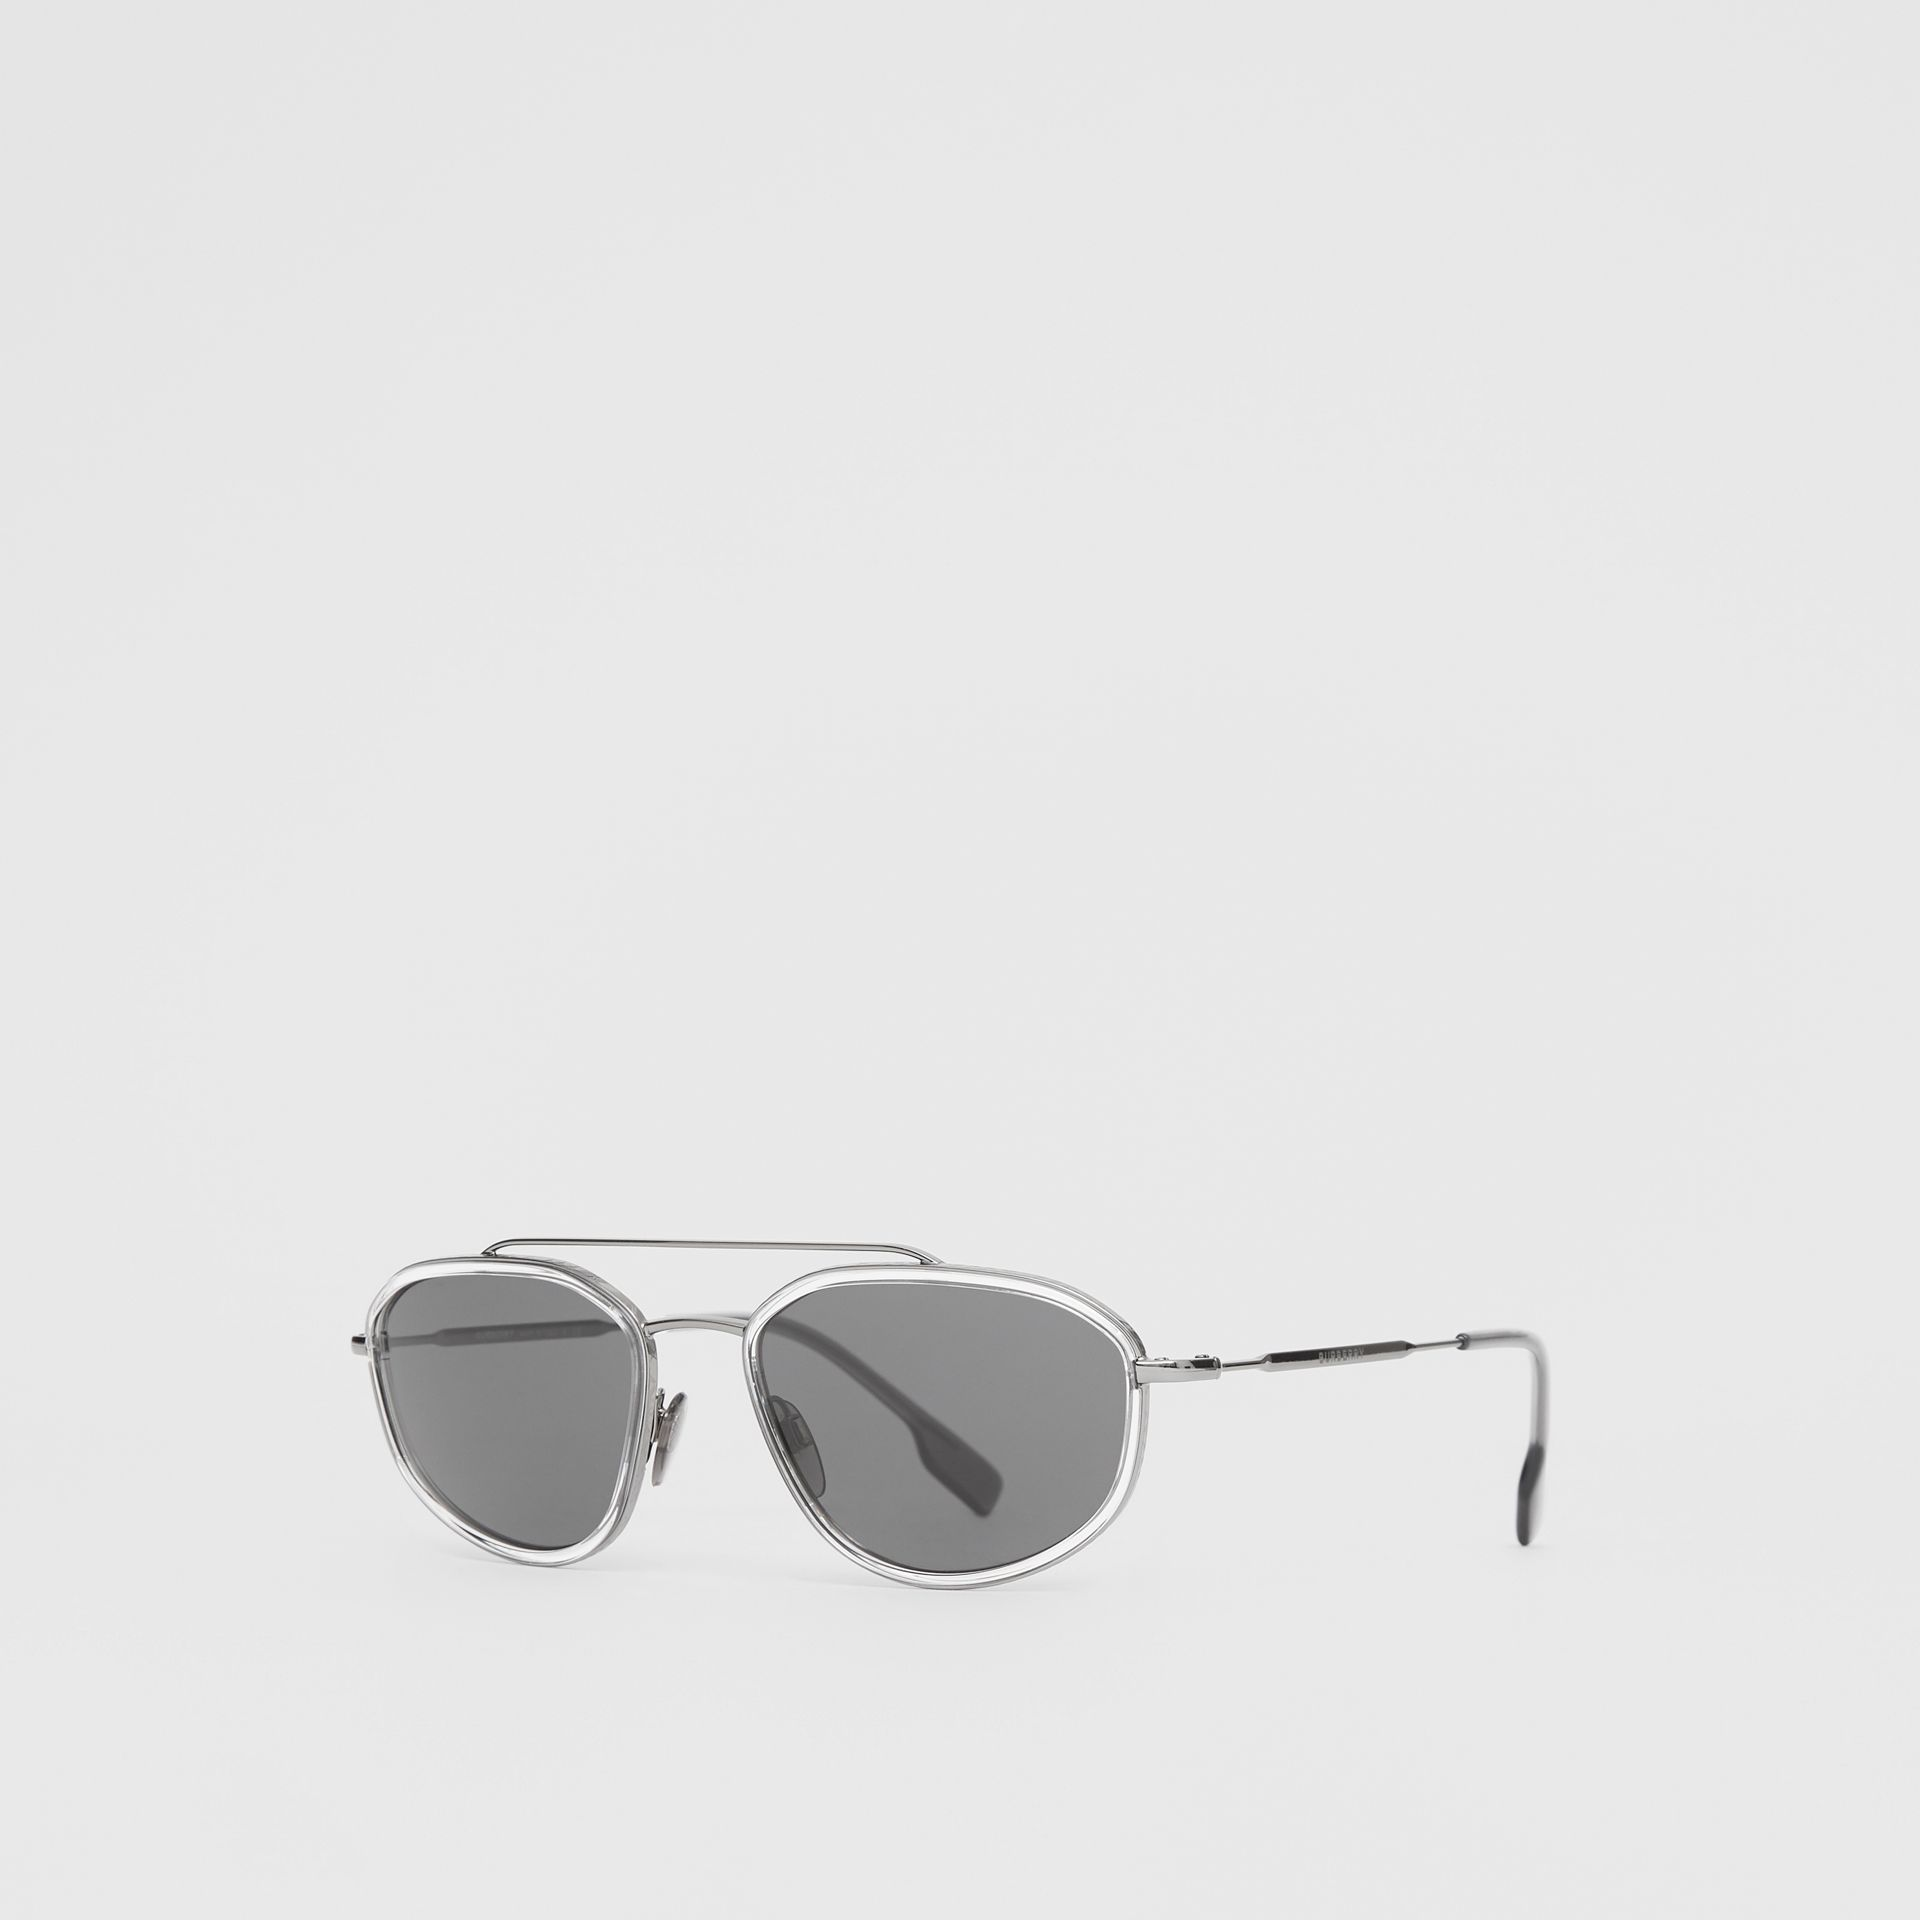 Geometric Navigator Sunglasses in Gunmetal Grey - Men | Burberry - gallery image 5